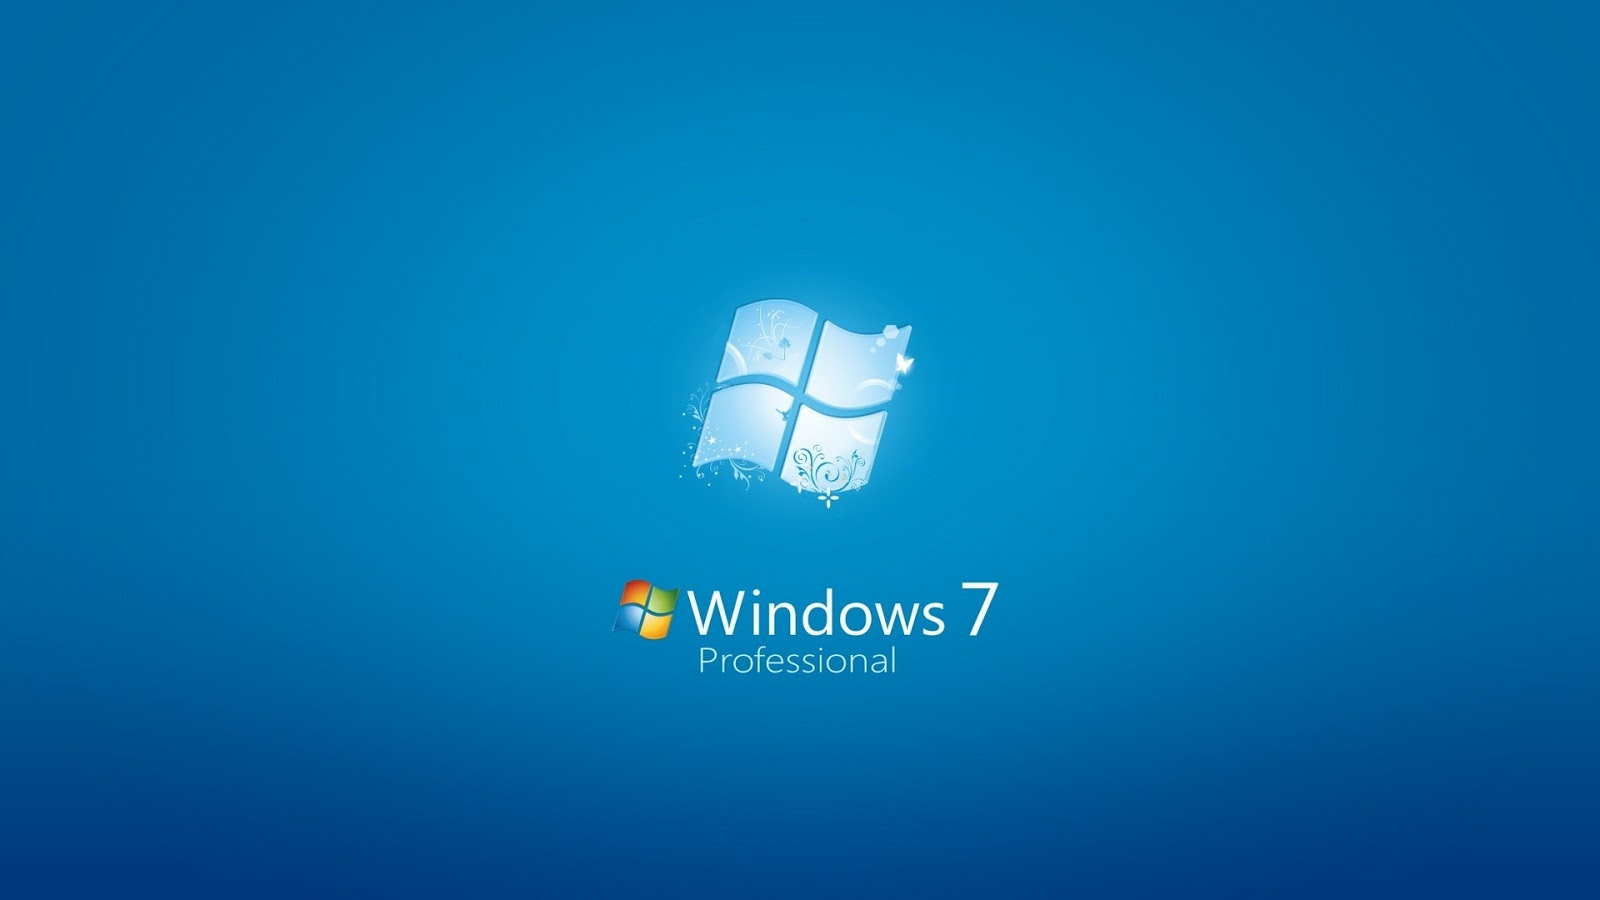 Windows 7 key free share 2016 windows product key for you for Windows windows